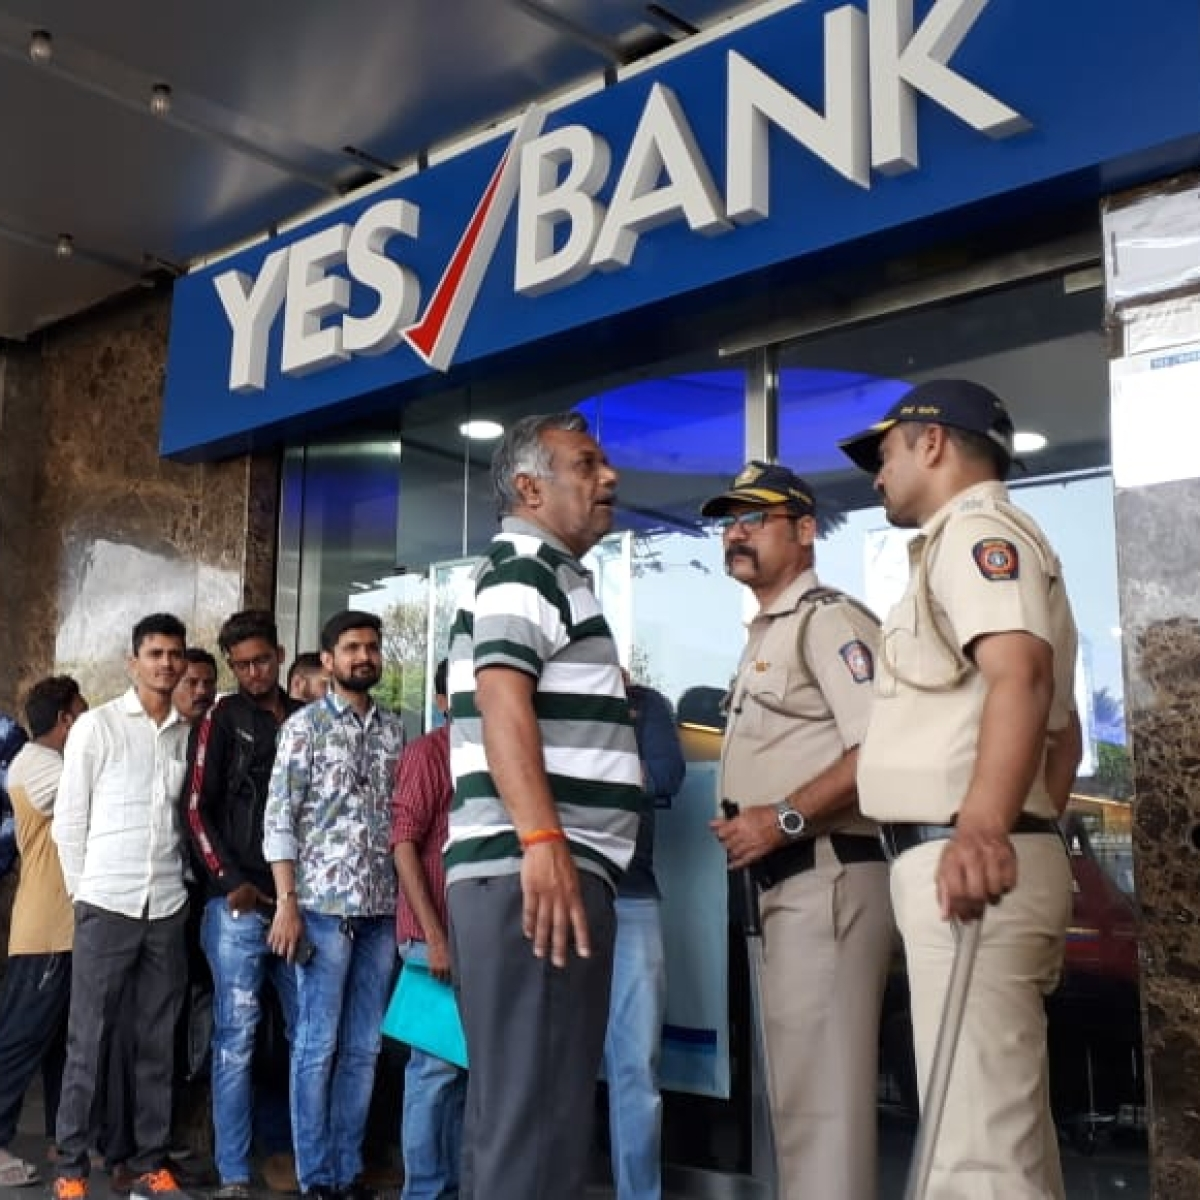 YES Bank finally says 'Yes' to other bank ATMs